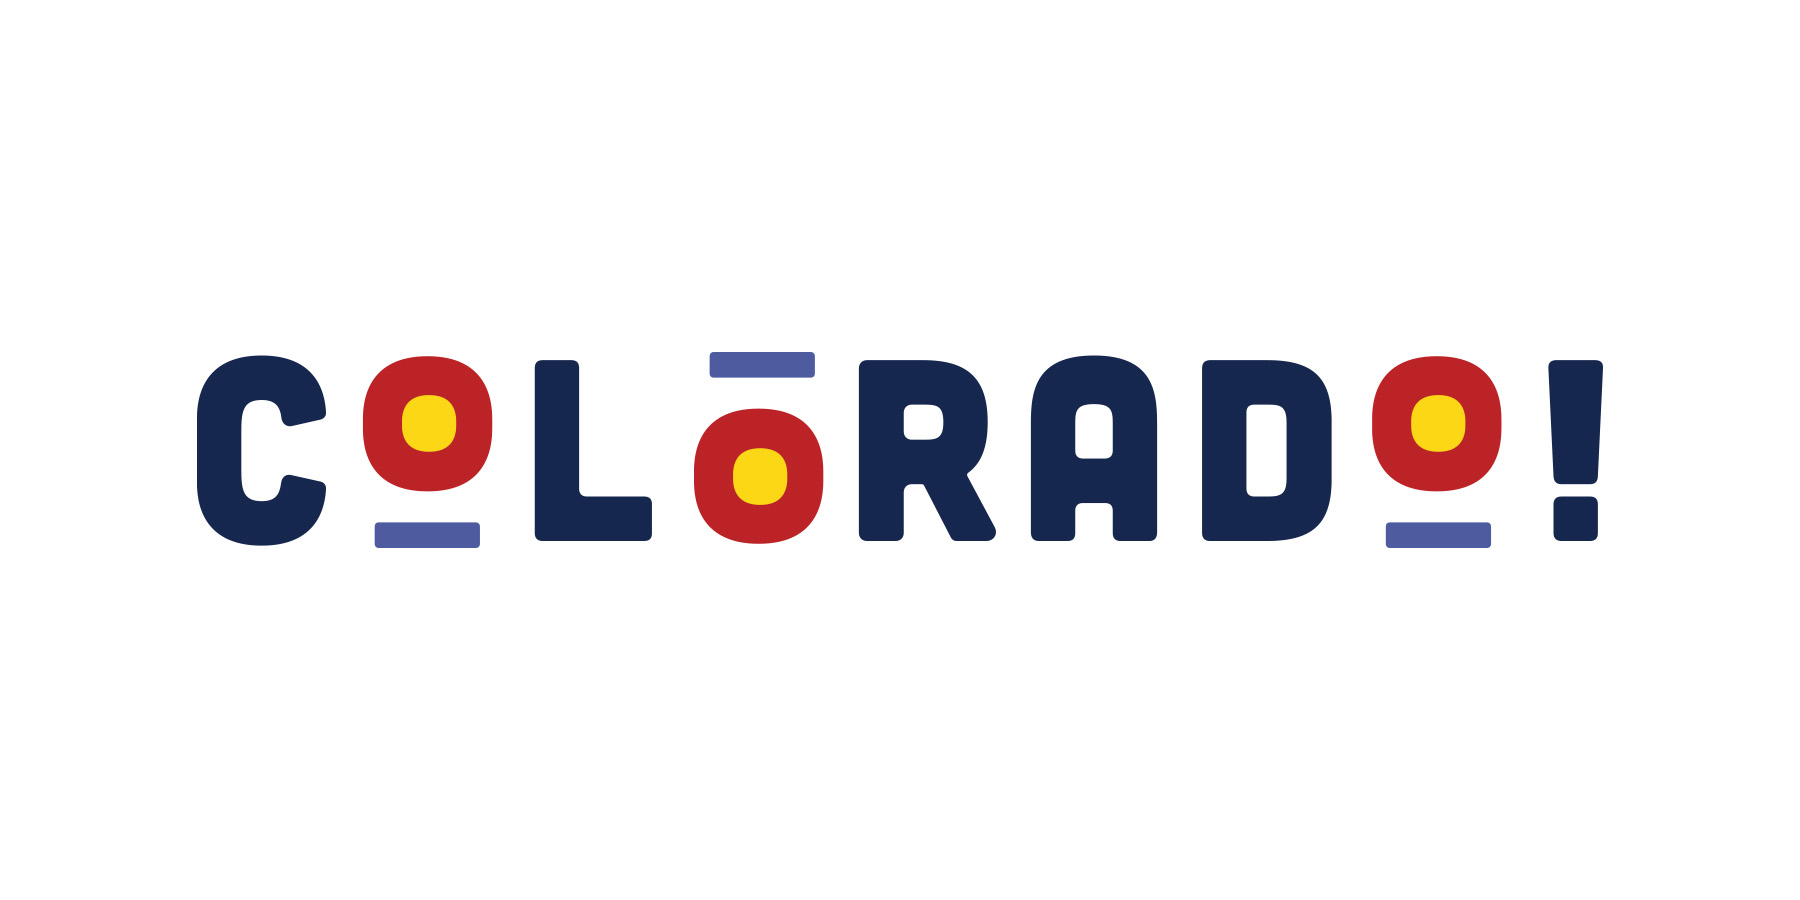 Colorado! logo